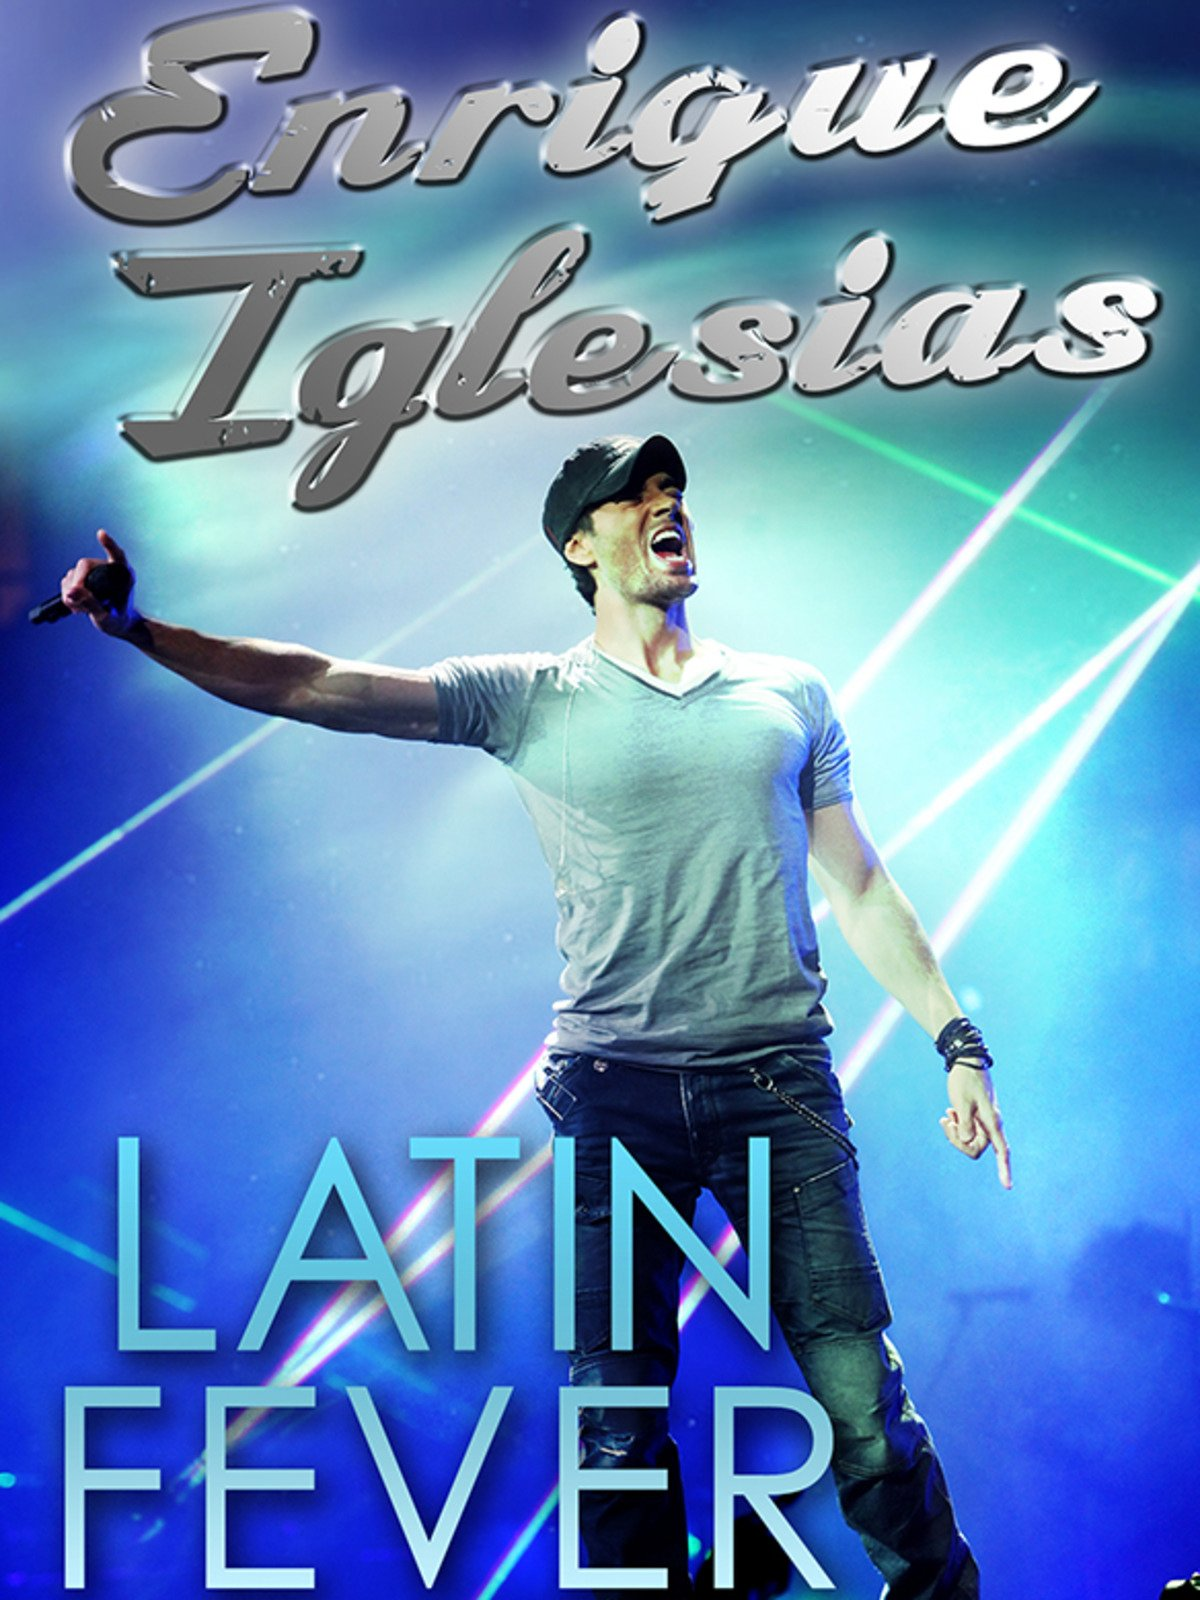 Enrique Iglesias: Latin Fever